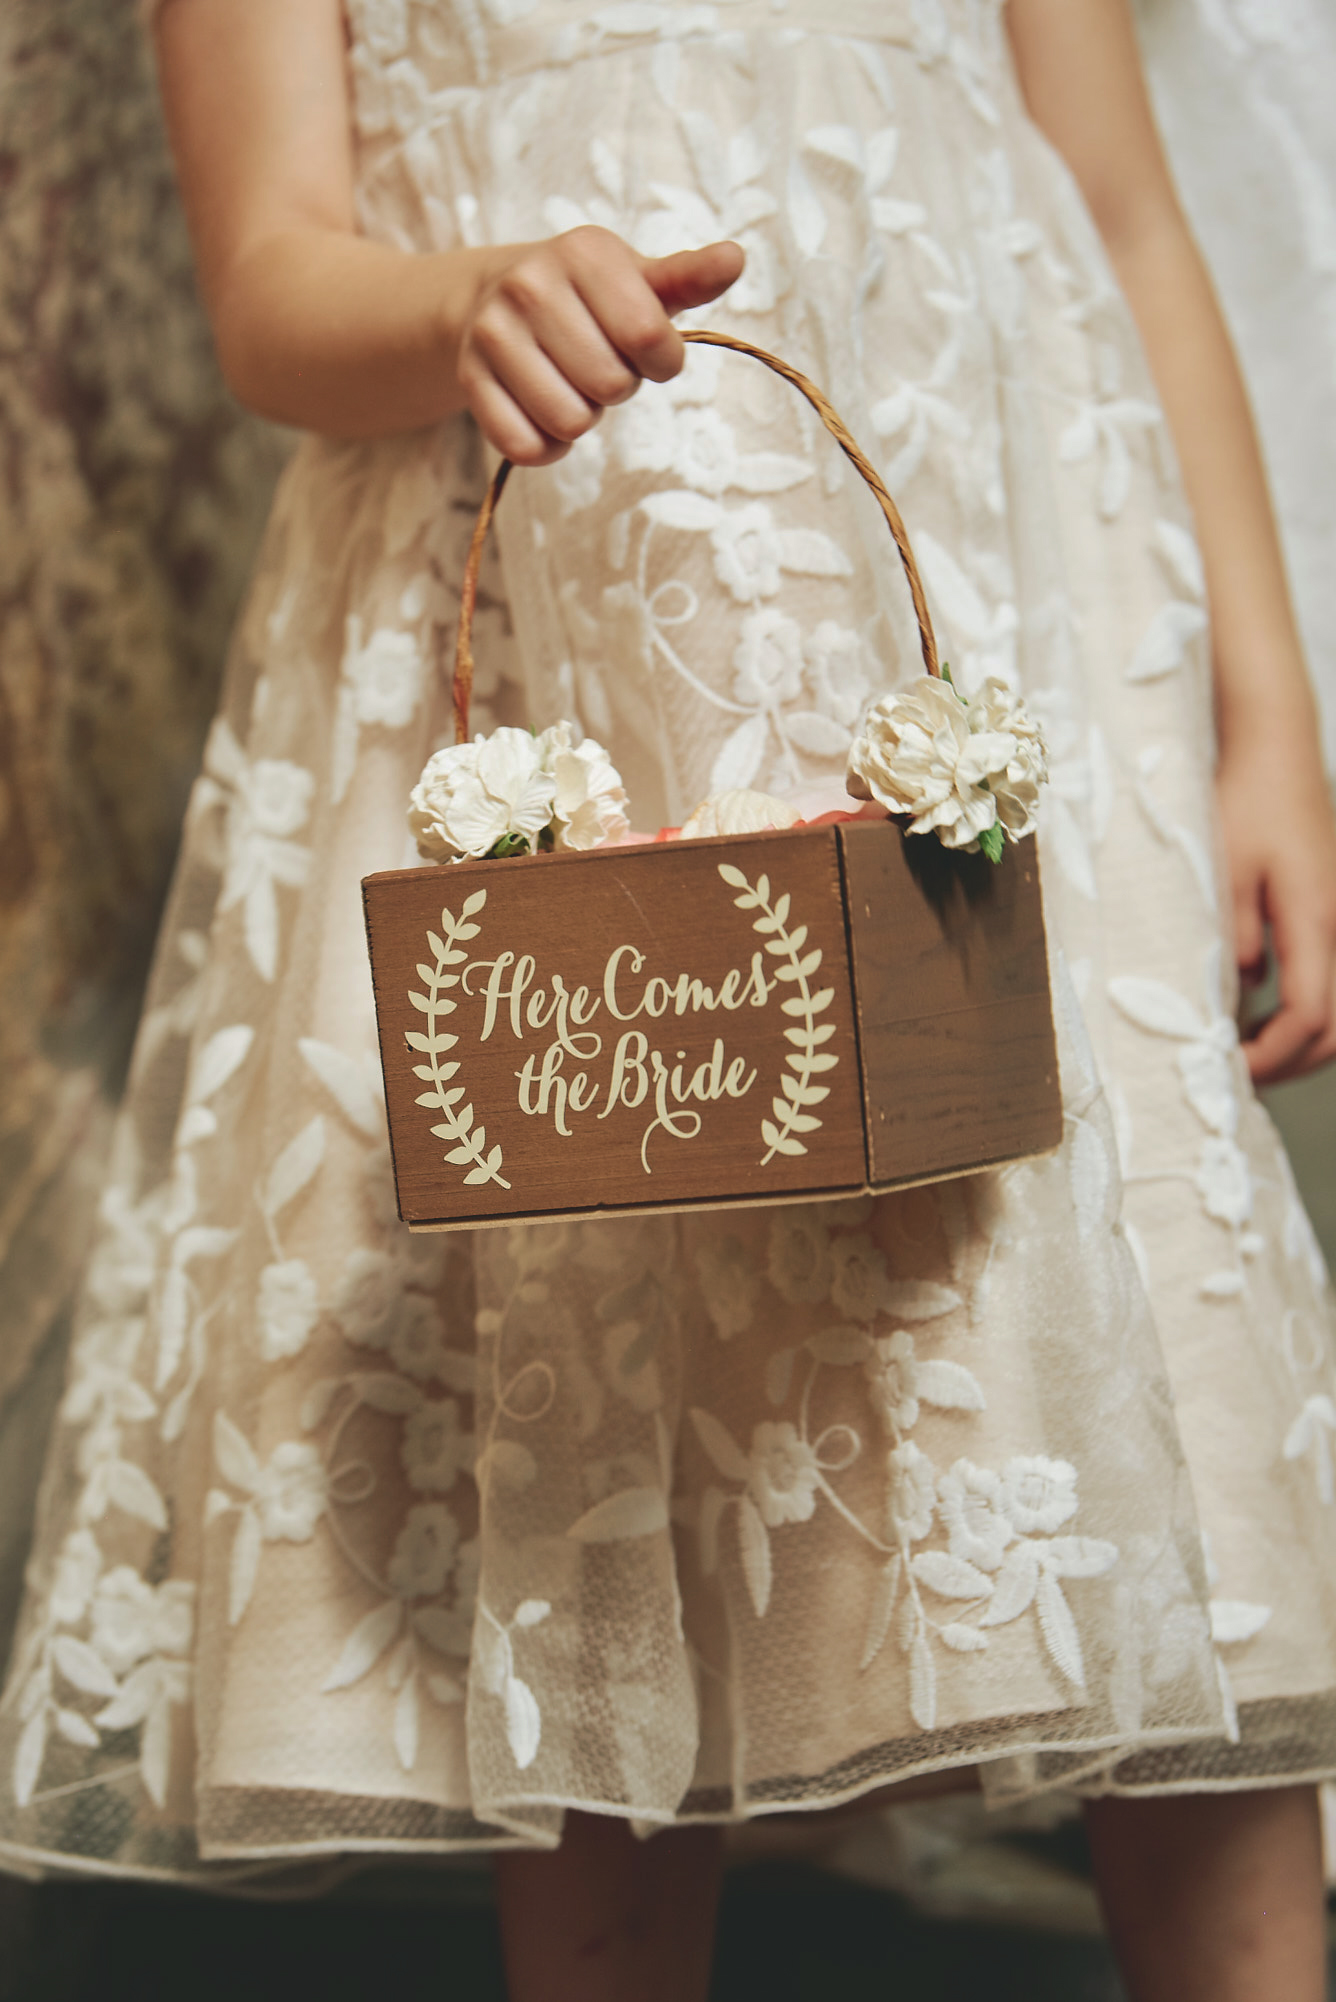 Flower girl in a lace dress holding a wooden basket with 'Here Comes the Bride' written on it